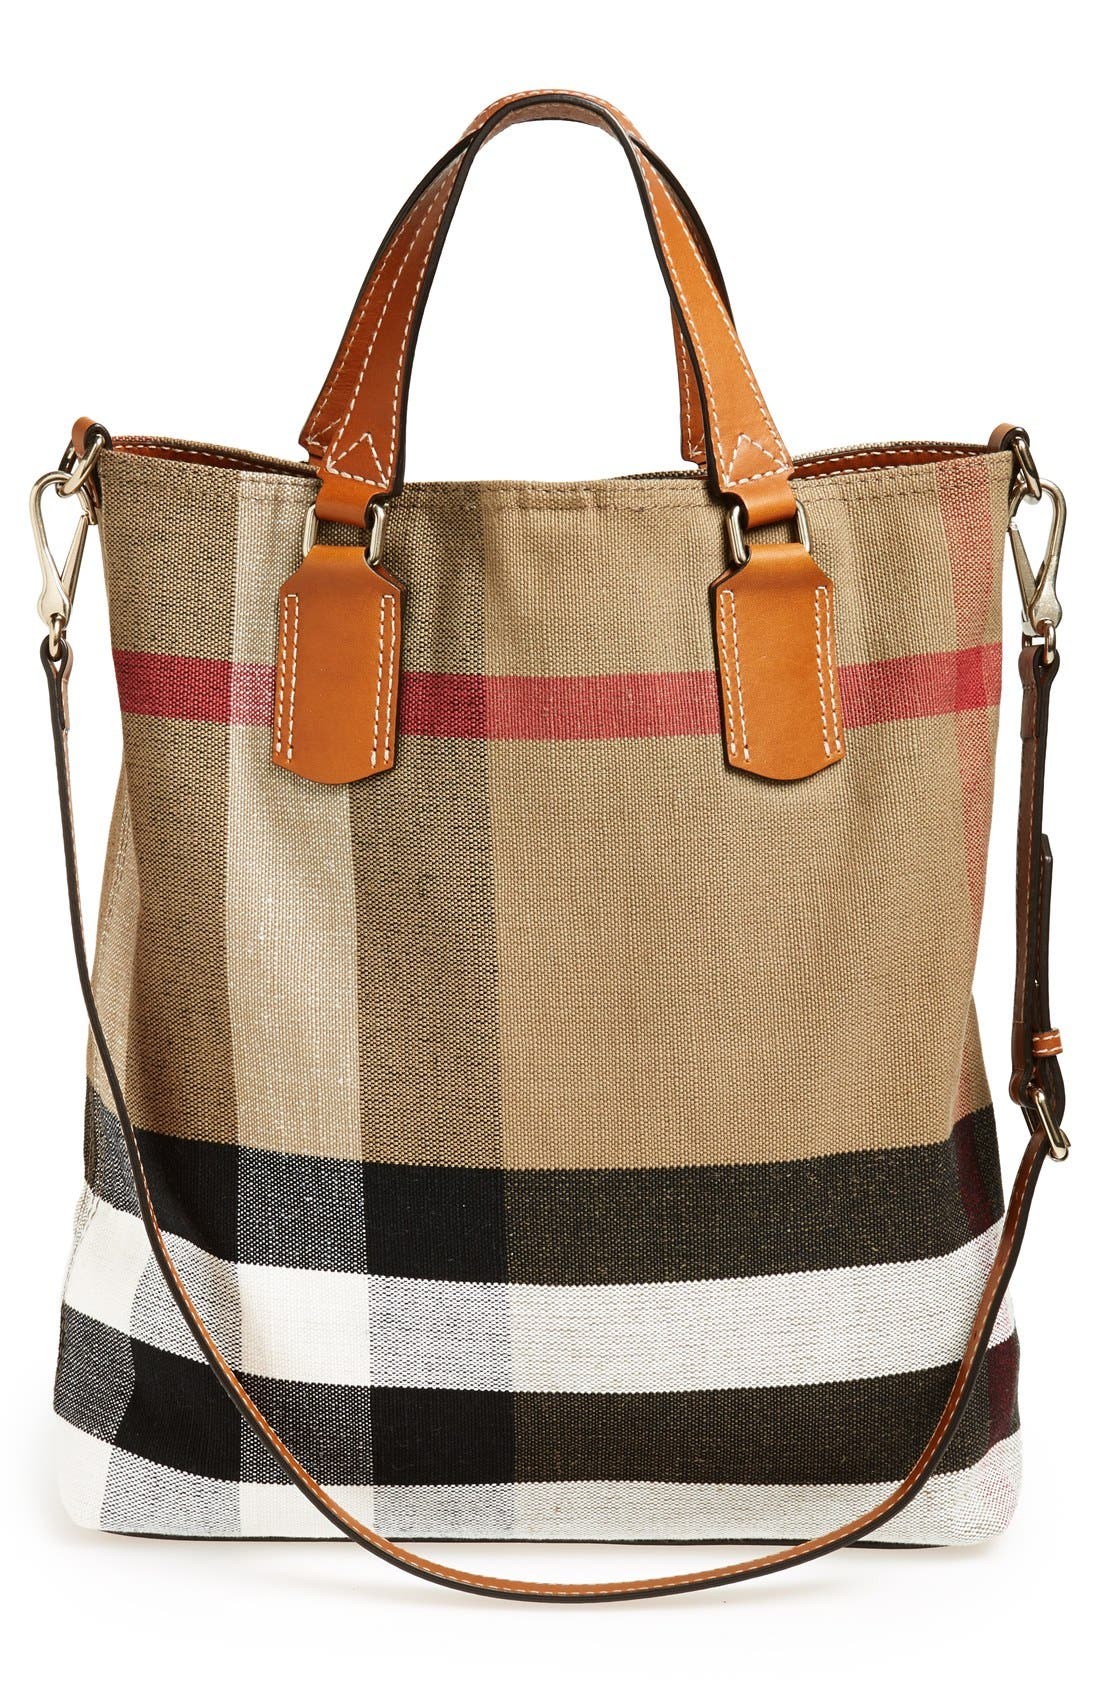 Alternate Image 4  - Burberry Brit 'Medium Tottenham' Check Print Bucket Tote